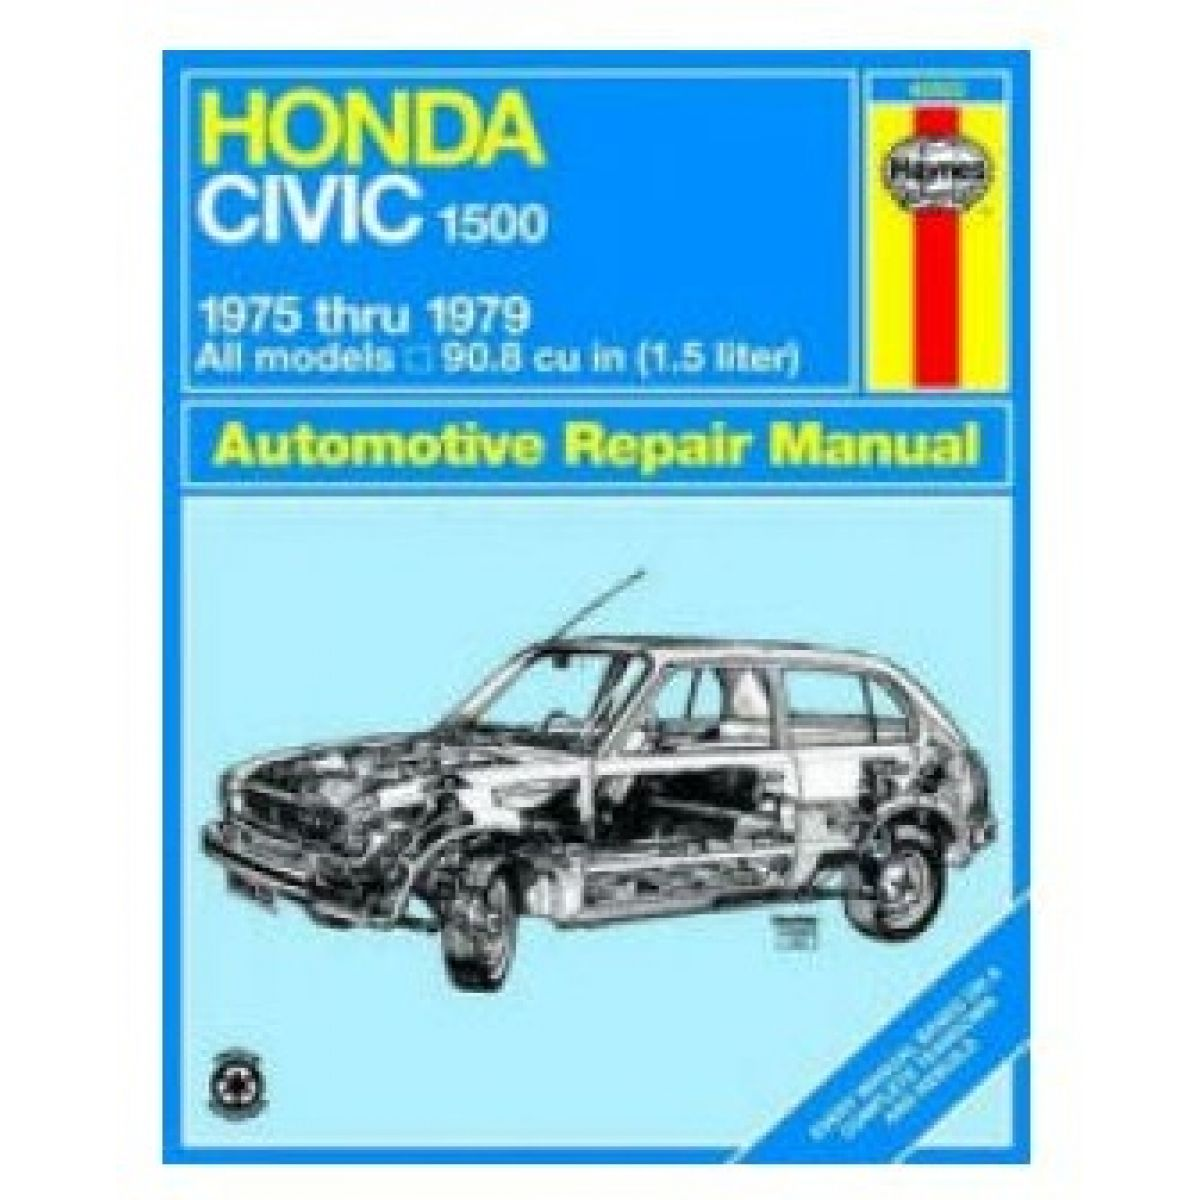 Haynes Repair Manual for 1975-1979 Honda Civic 1500